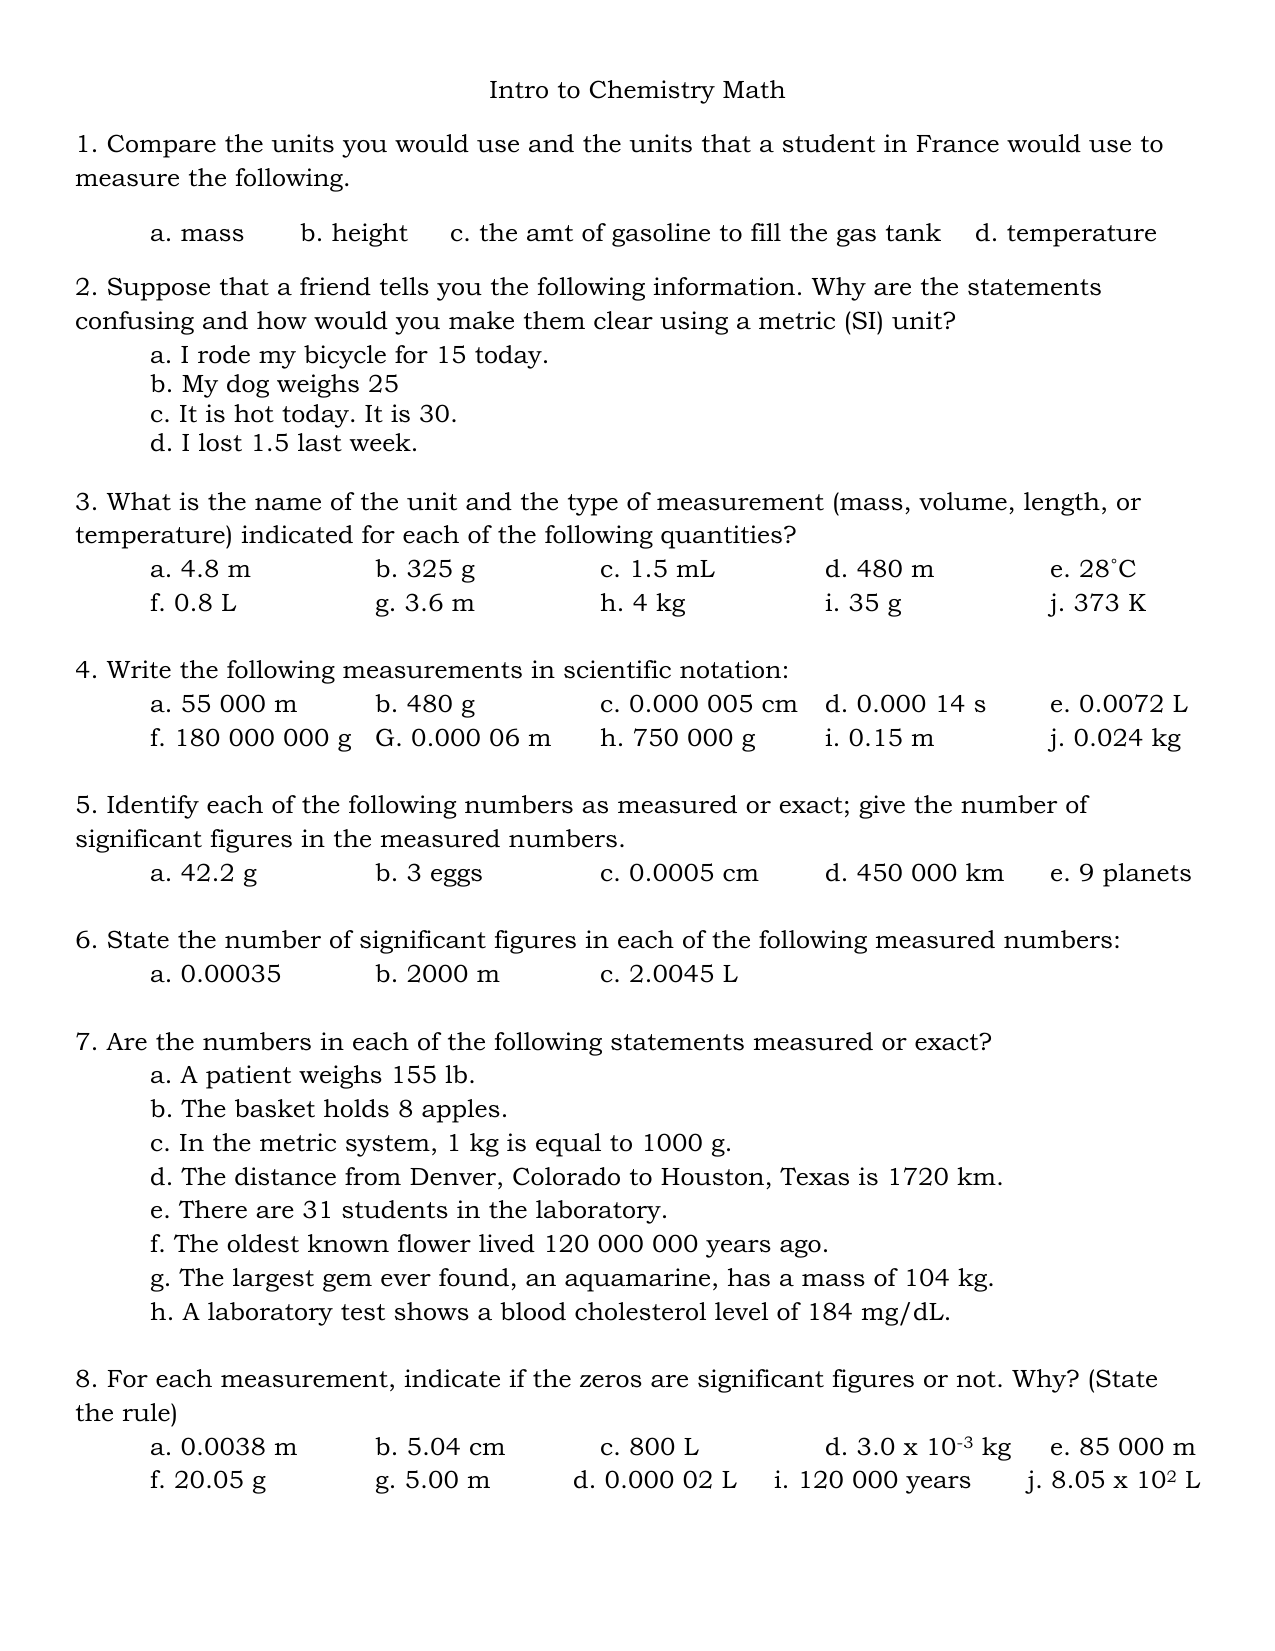 Intro To Chemistry Math Worksheet 1 23 12